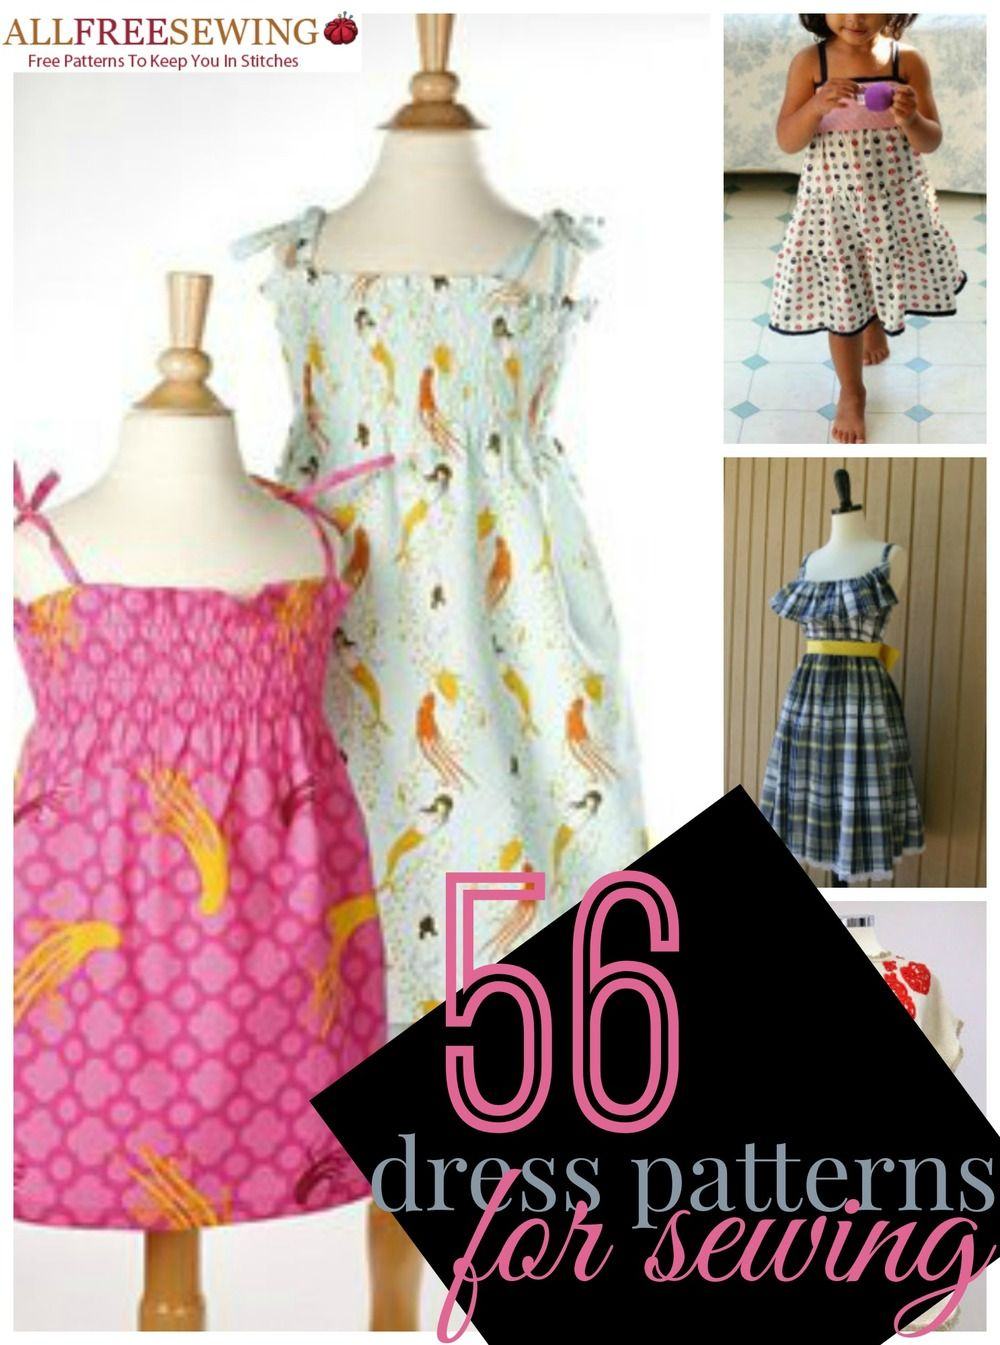 75 free dress patterns for sewing dress patterns patterns and 56 dress patterns for sewing 11 new free dress patterns allfreesewing jeuxipadfo Choice Image